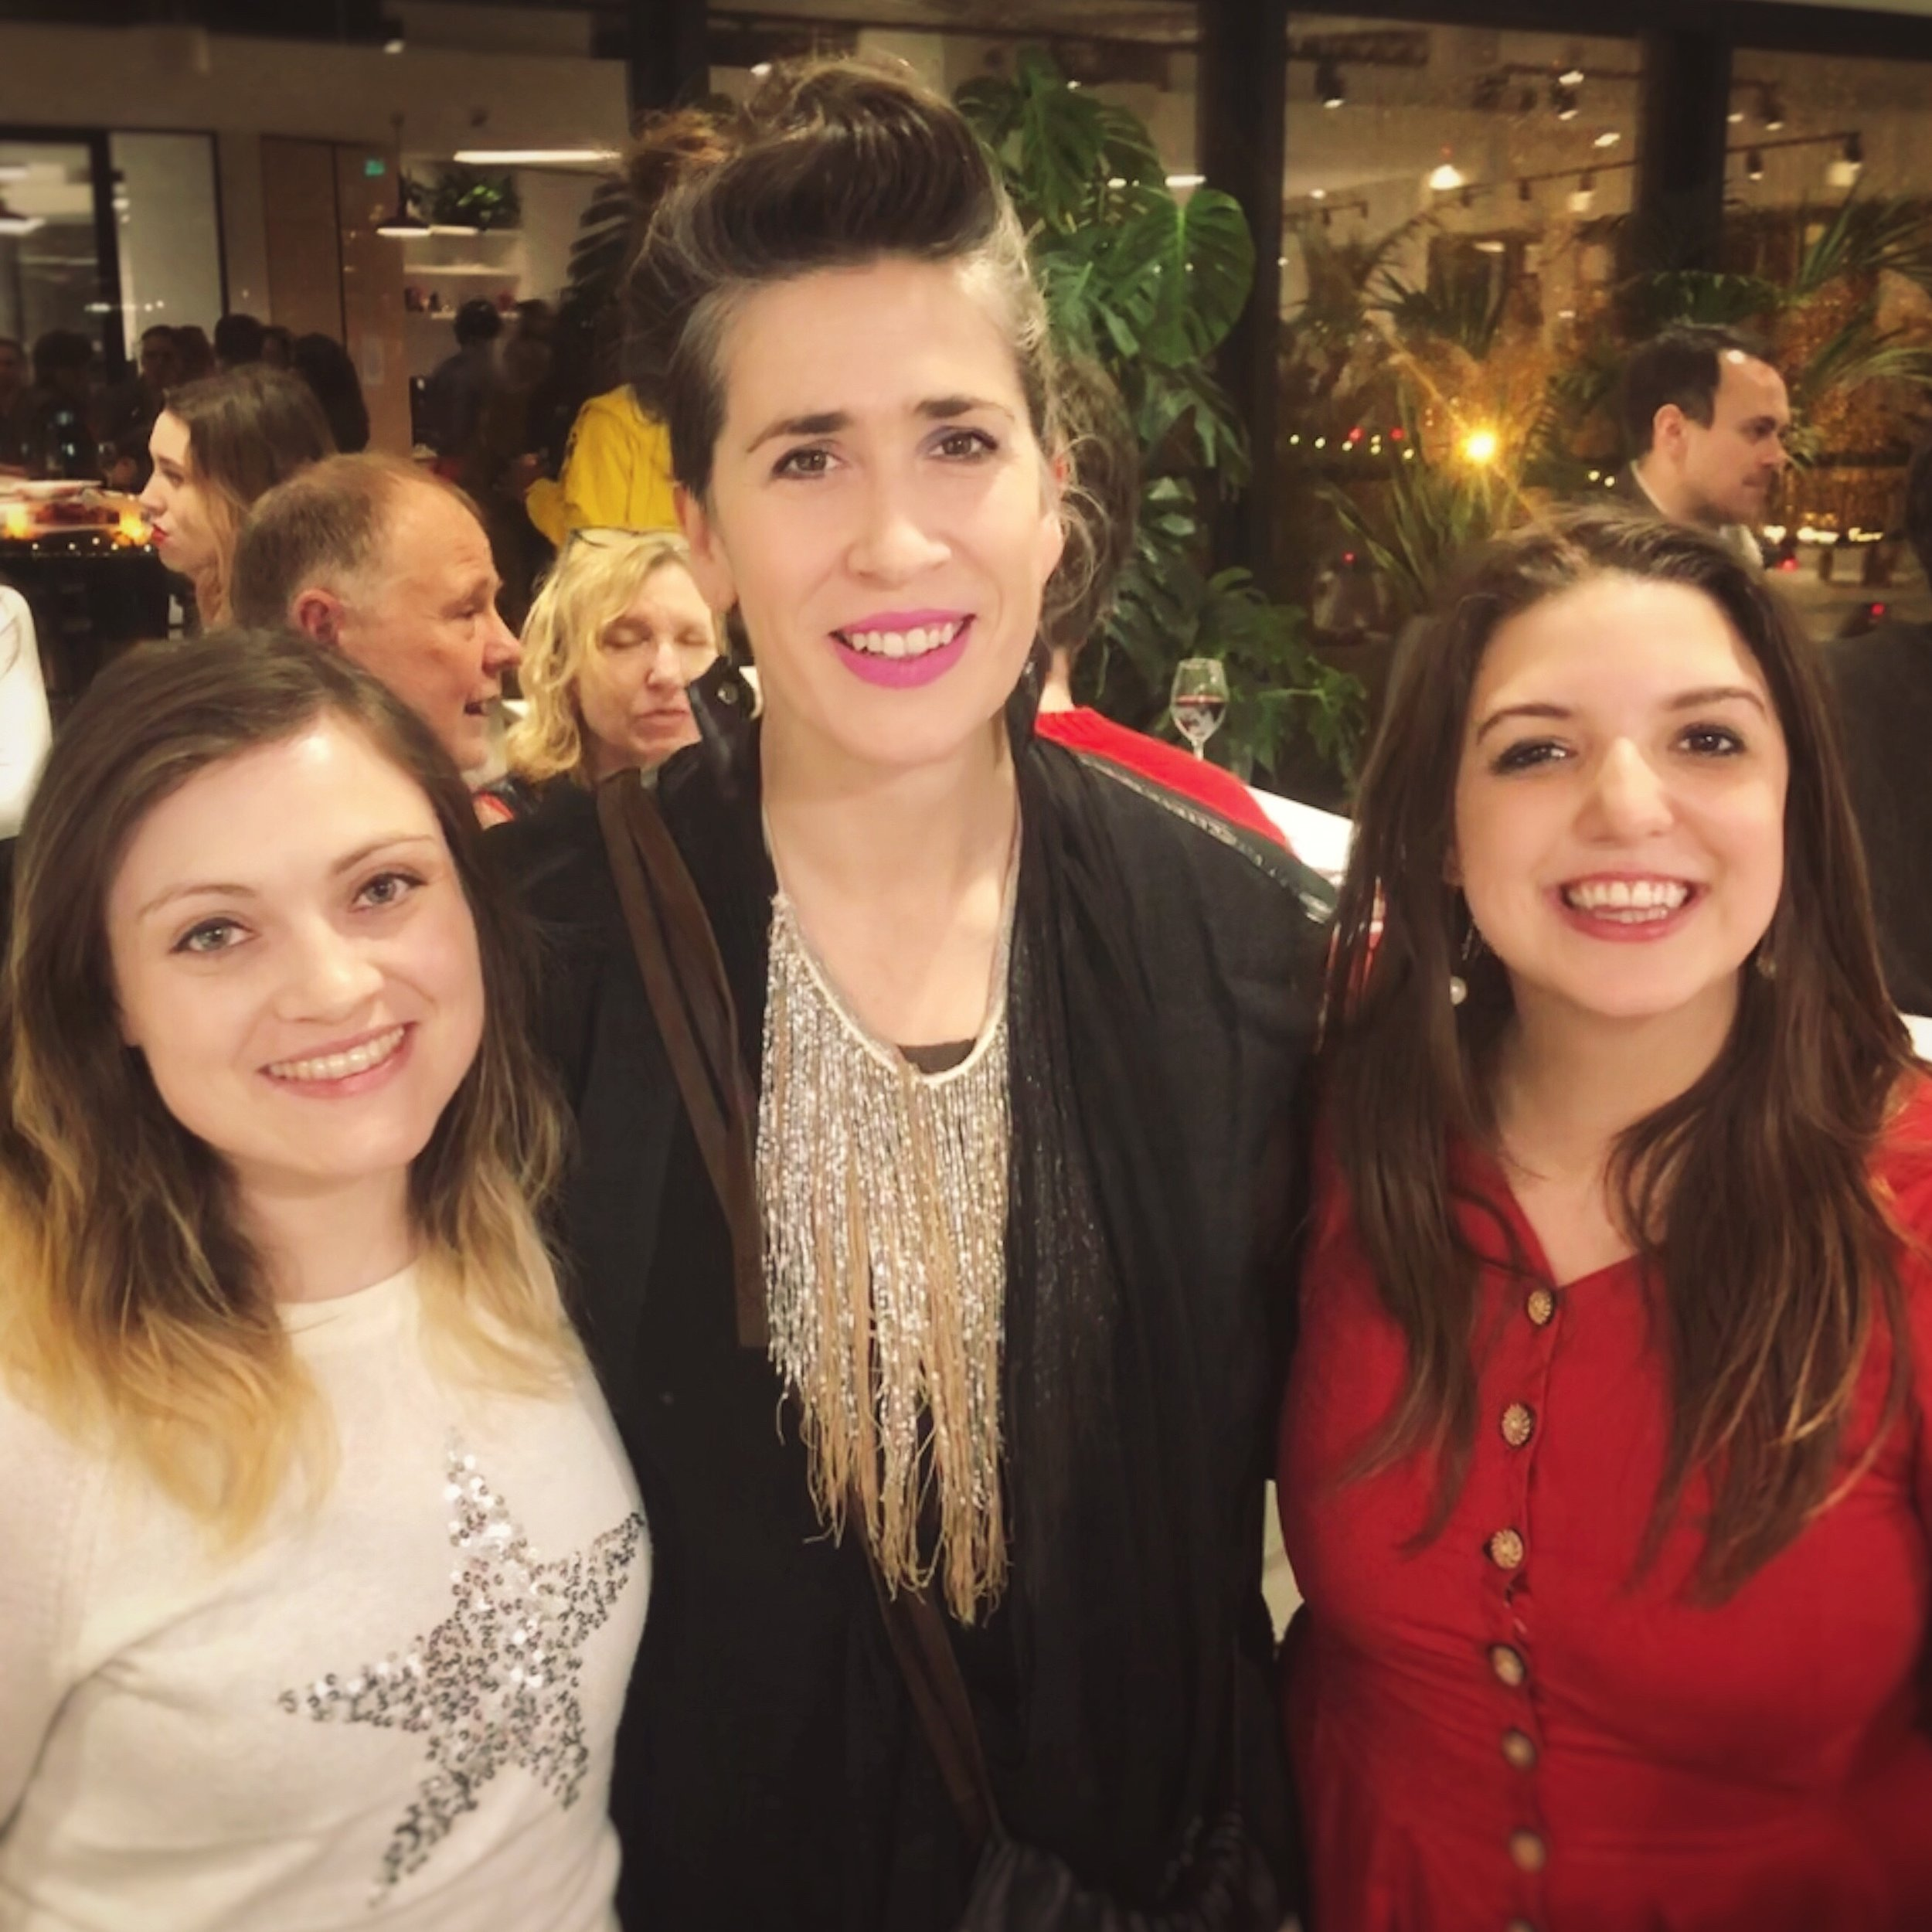 With Imogen Heap